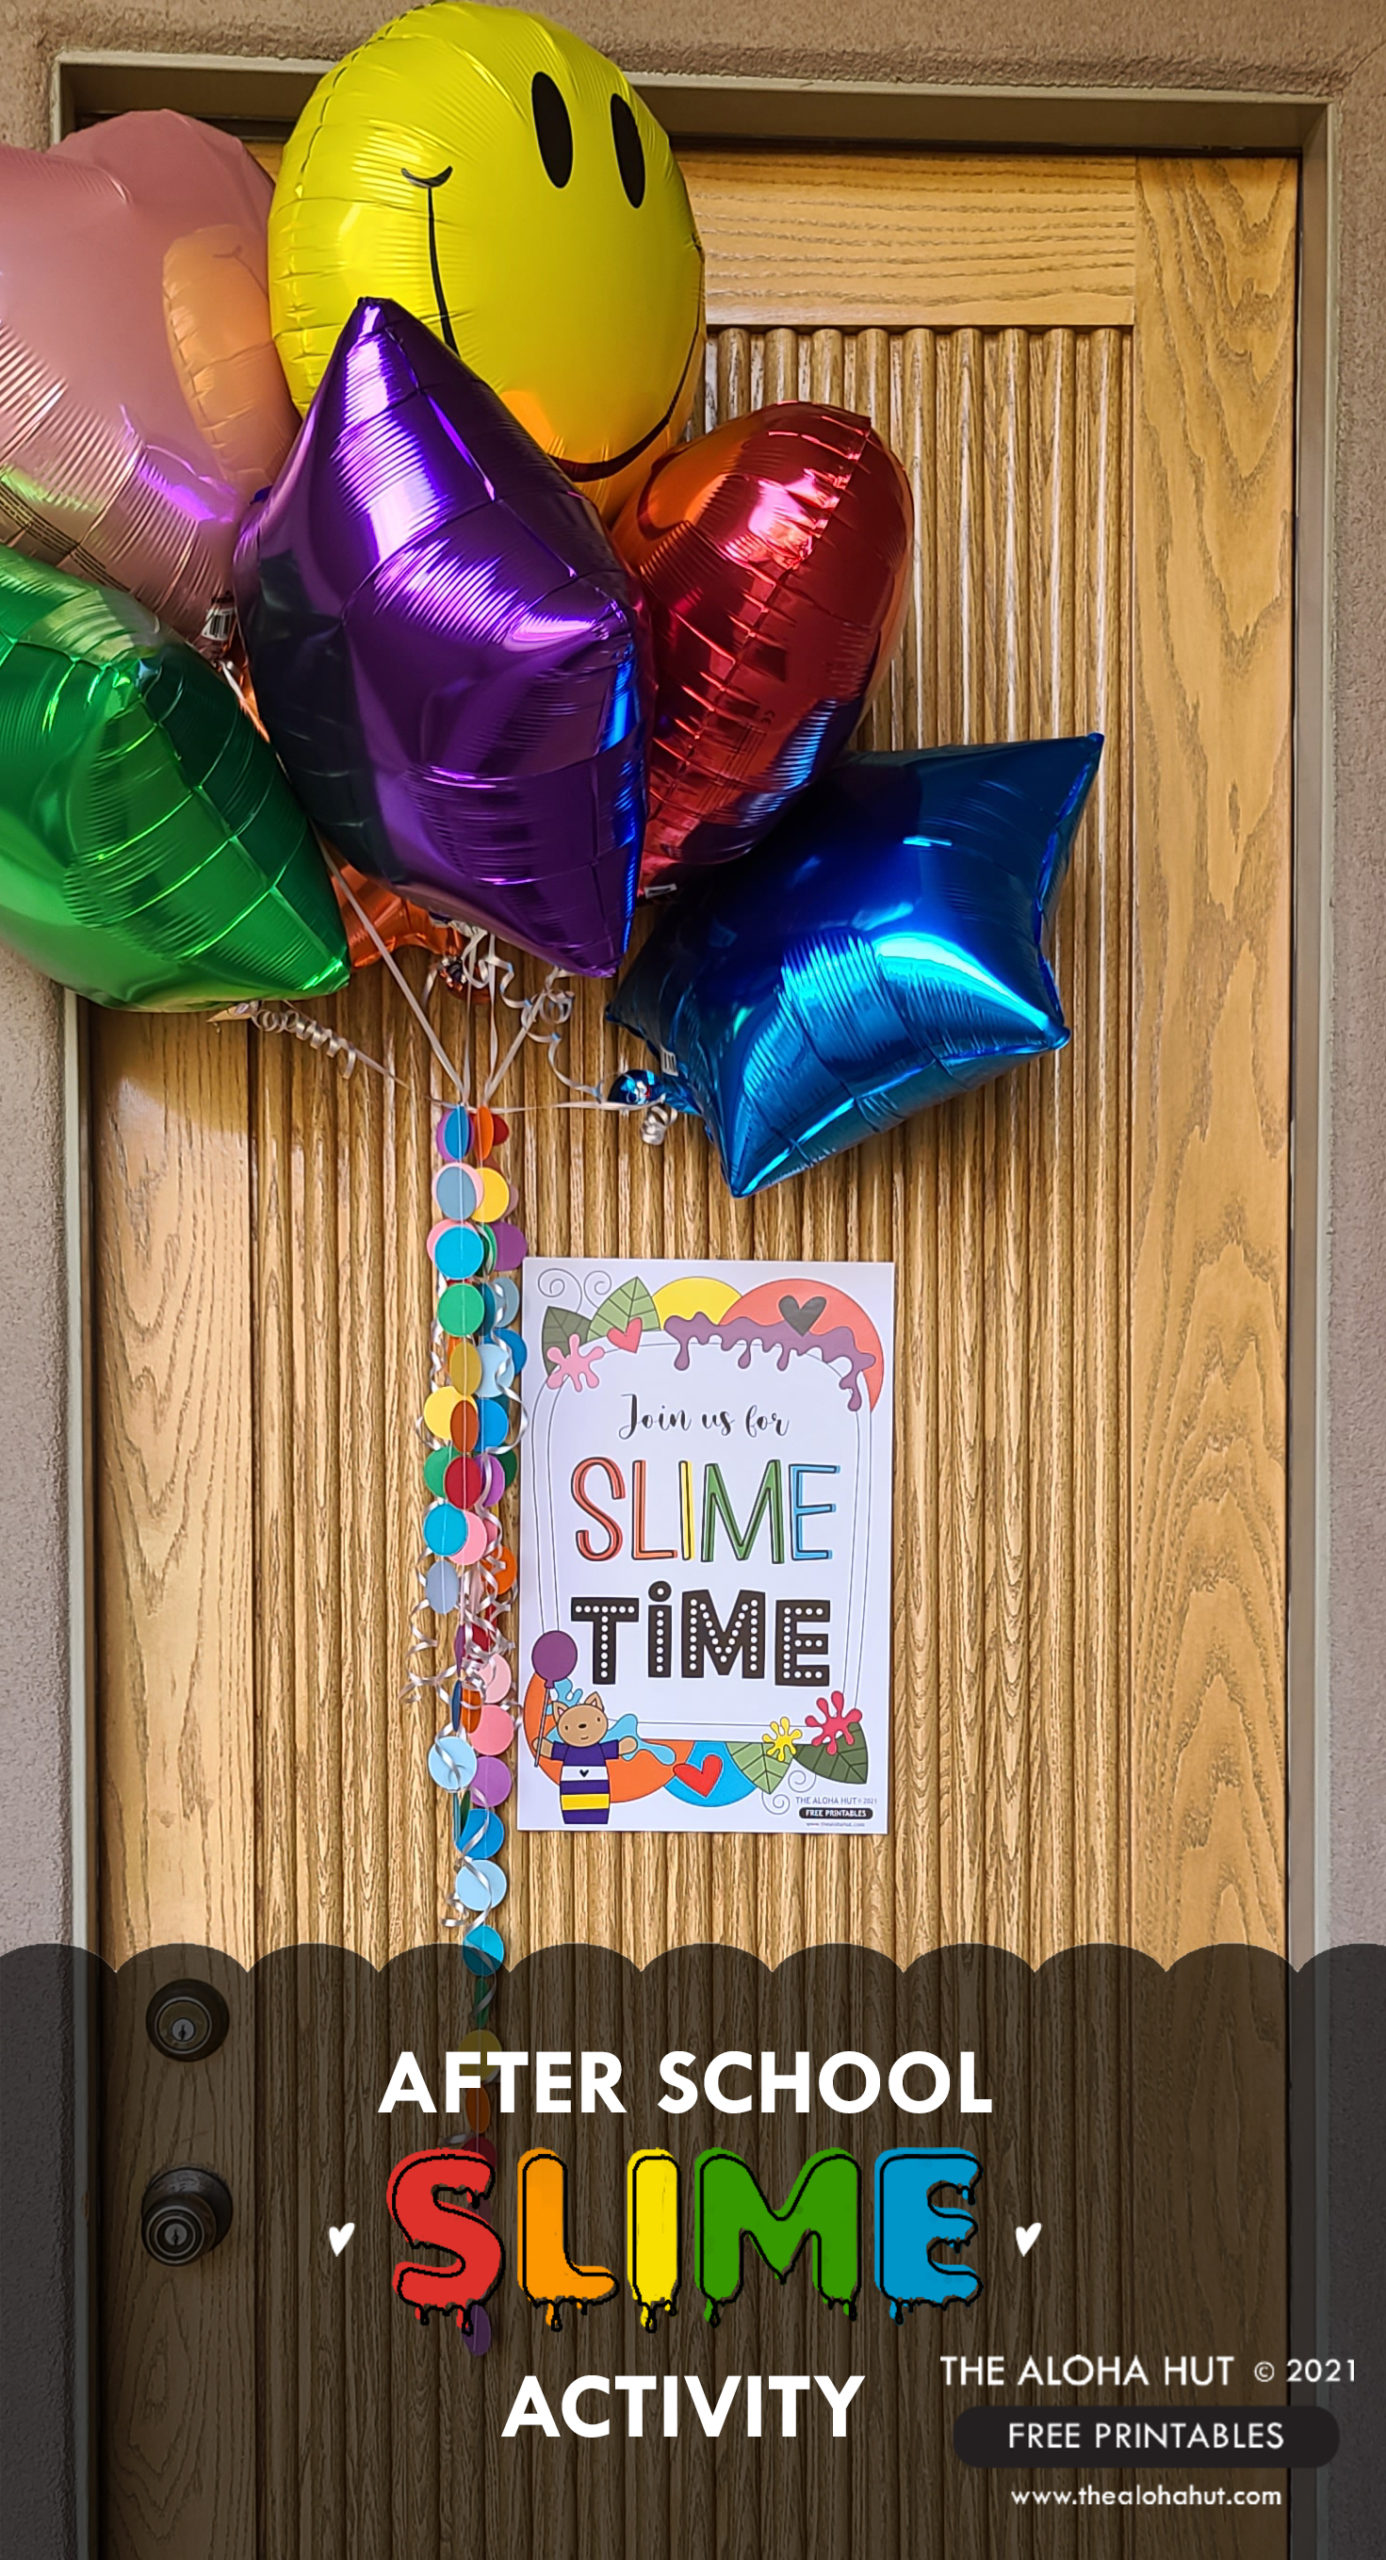 After School Slime Activity - Door Sign FREE Printable - The Aloha Hut